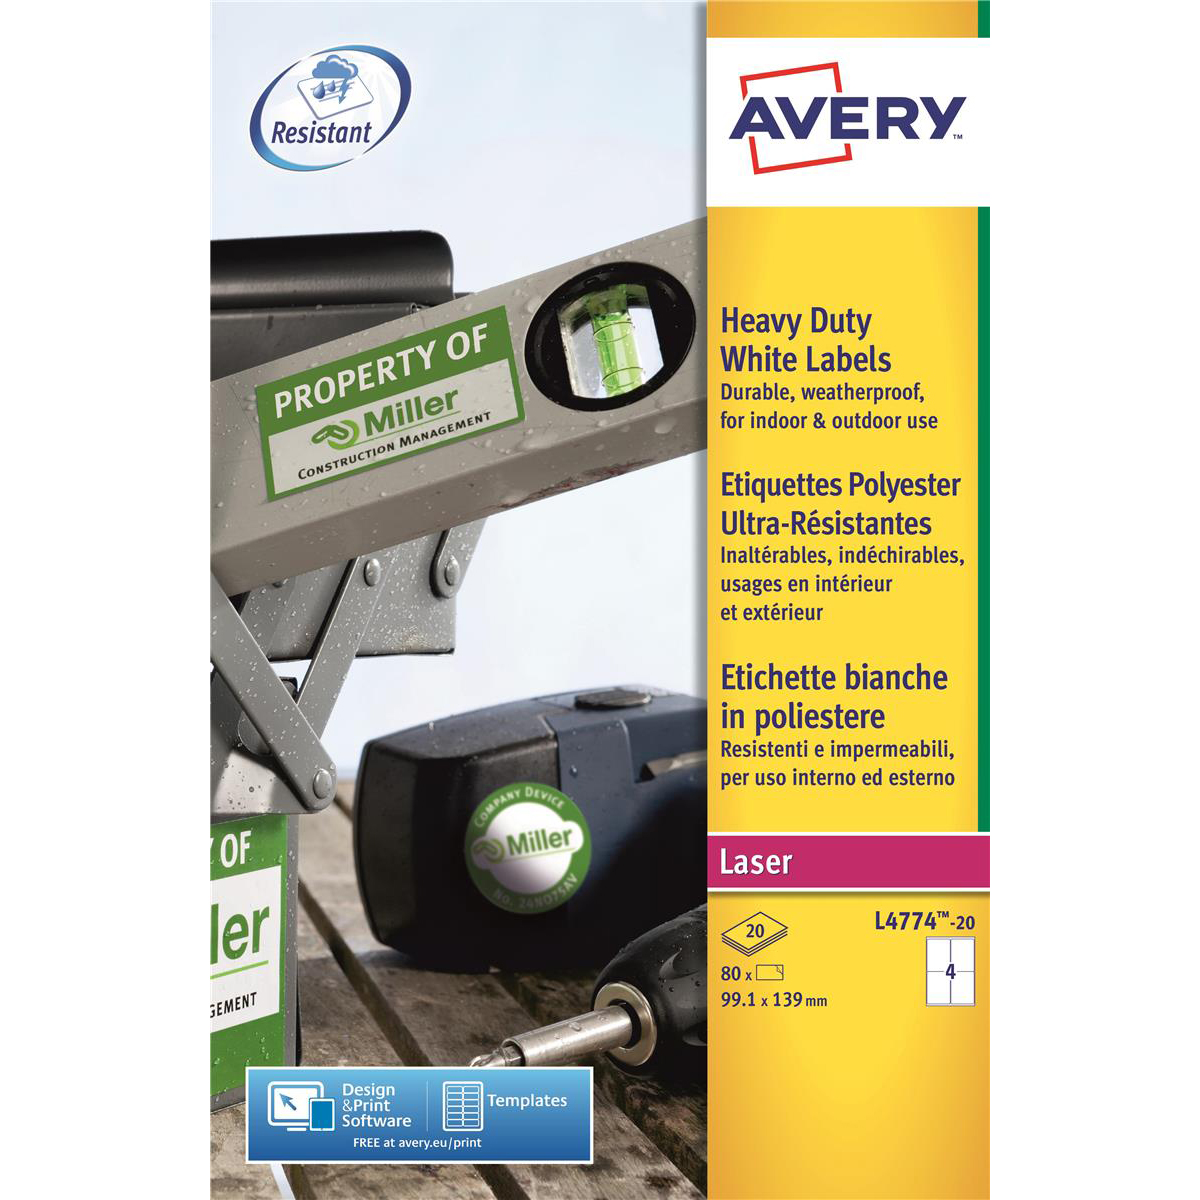 Removable Avery Heavy Duty Labels Laser 4 per Sheet 99.1x139mm White Ref L4774-20 80 Labels